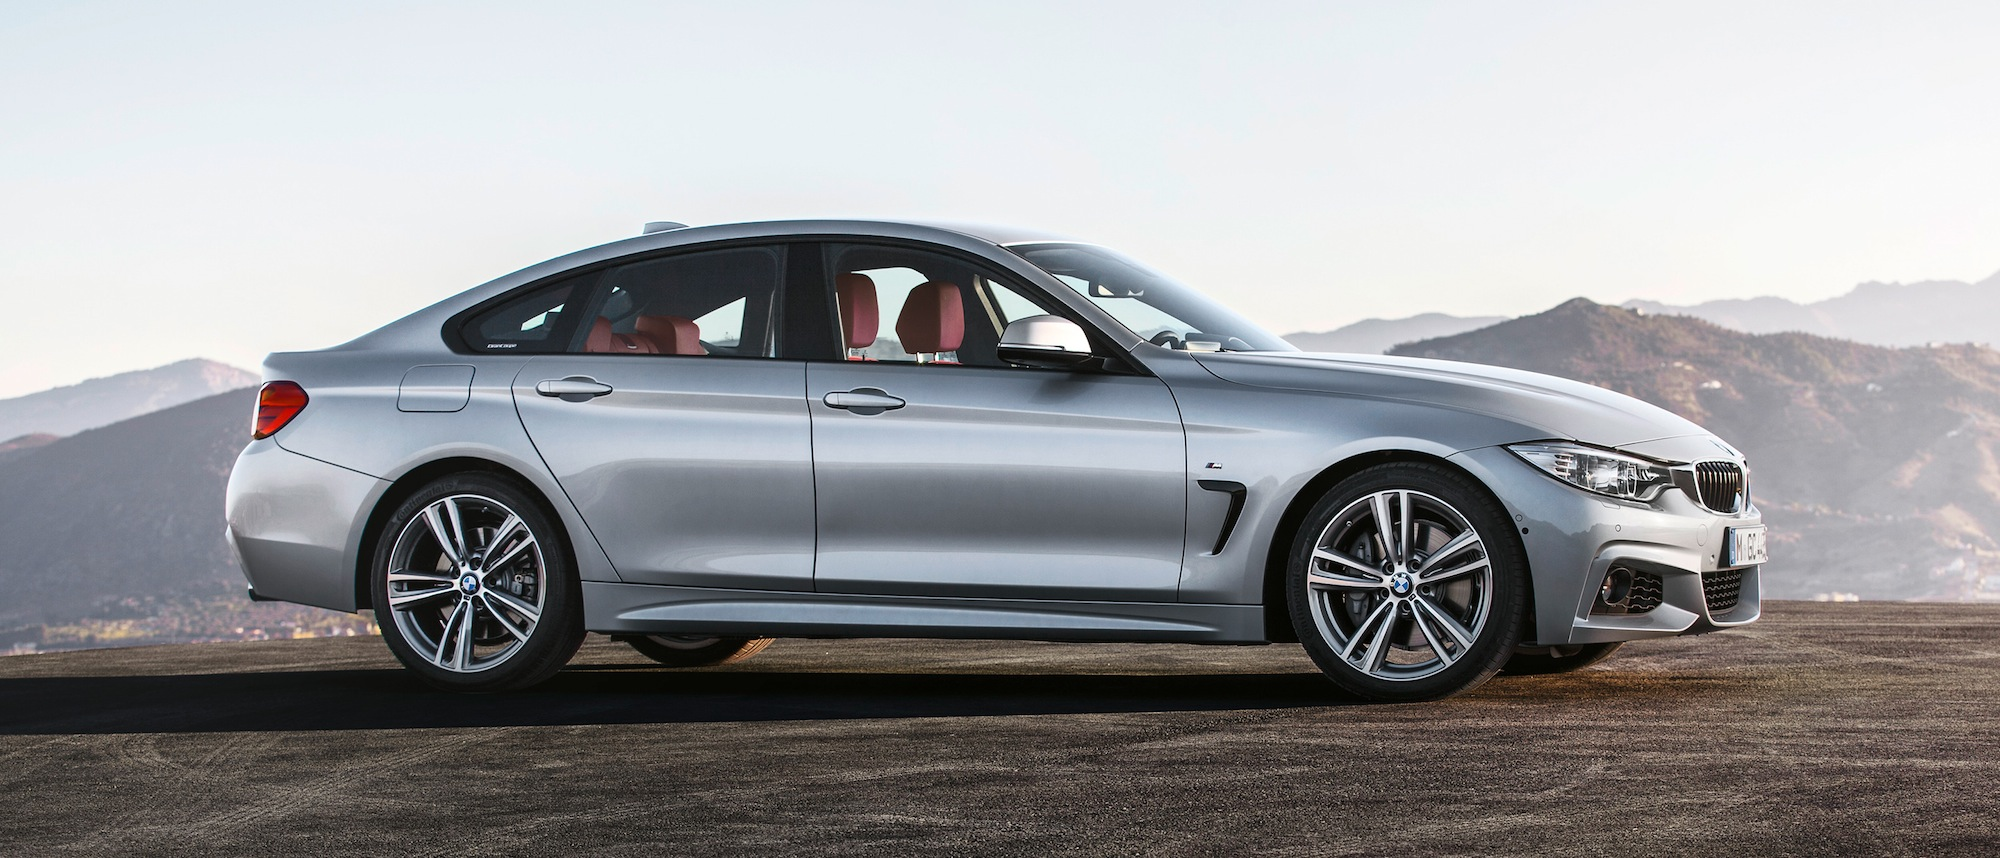 Le Meilleur Bmw 4 Series Gran Coupe Four Door Hatchback Revealed Ce Mois Ci